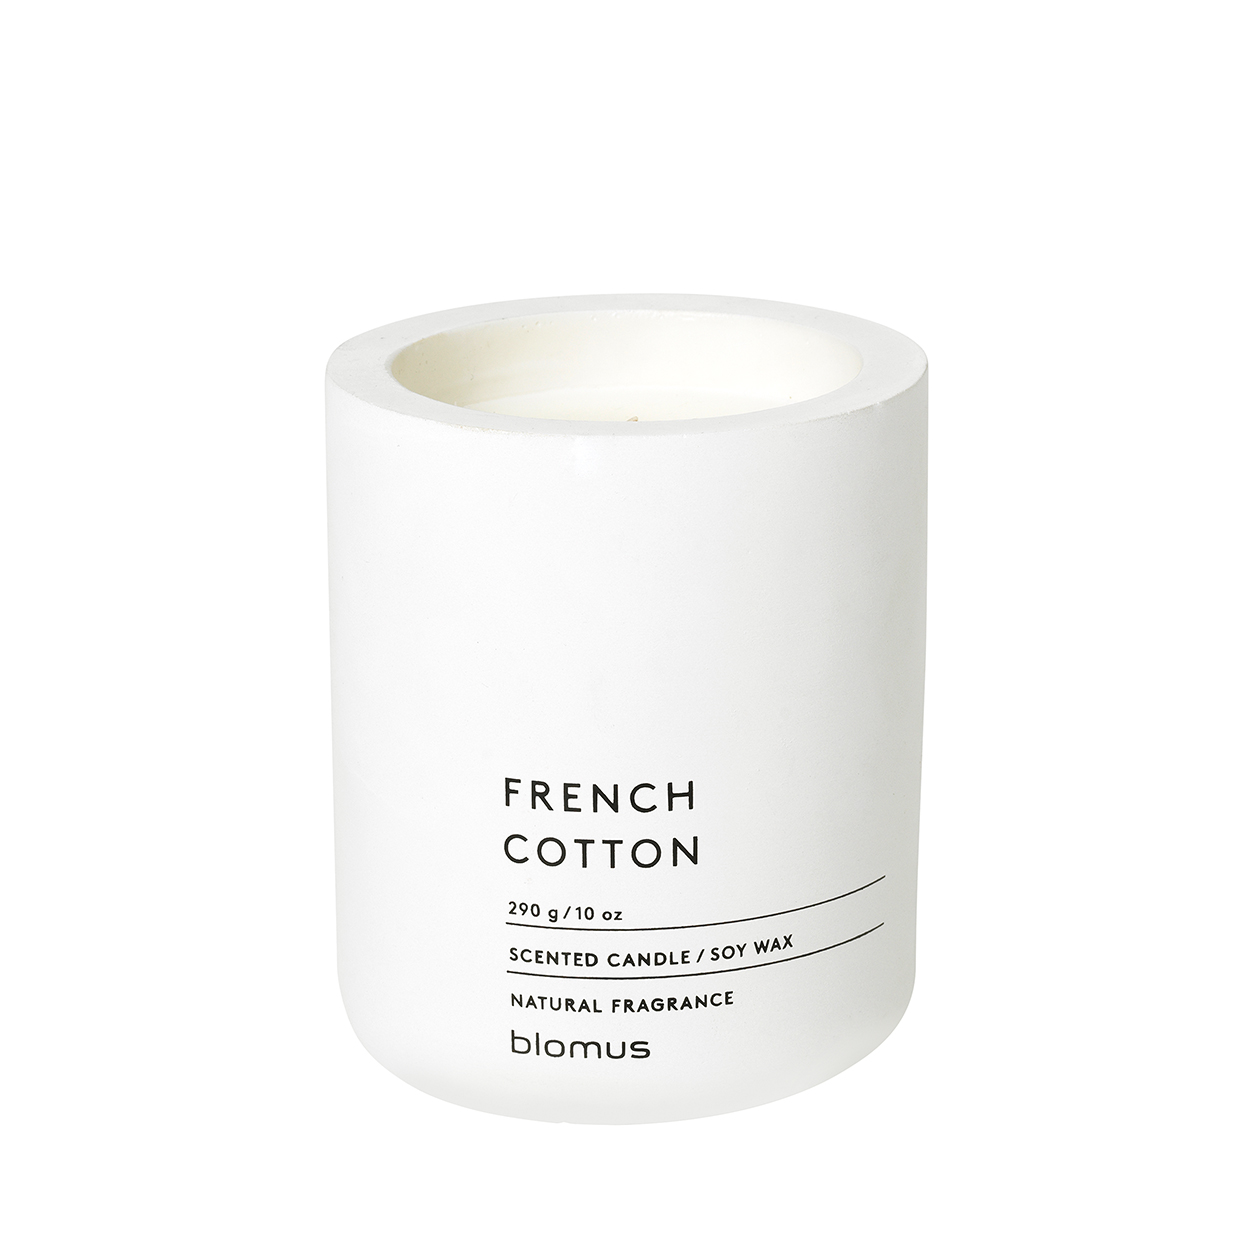 image-French Cotton Scented Candle